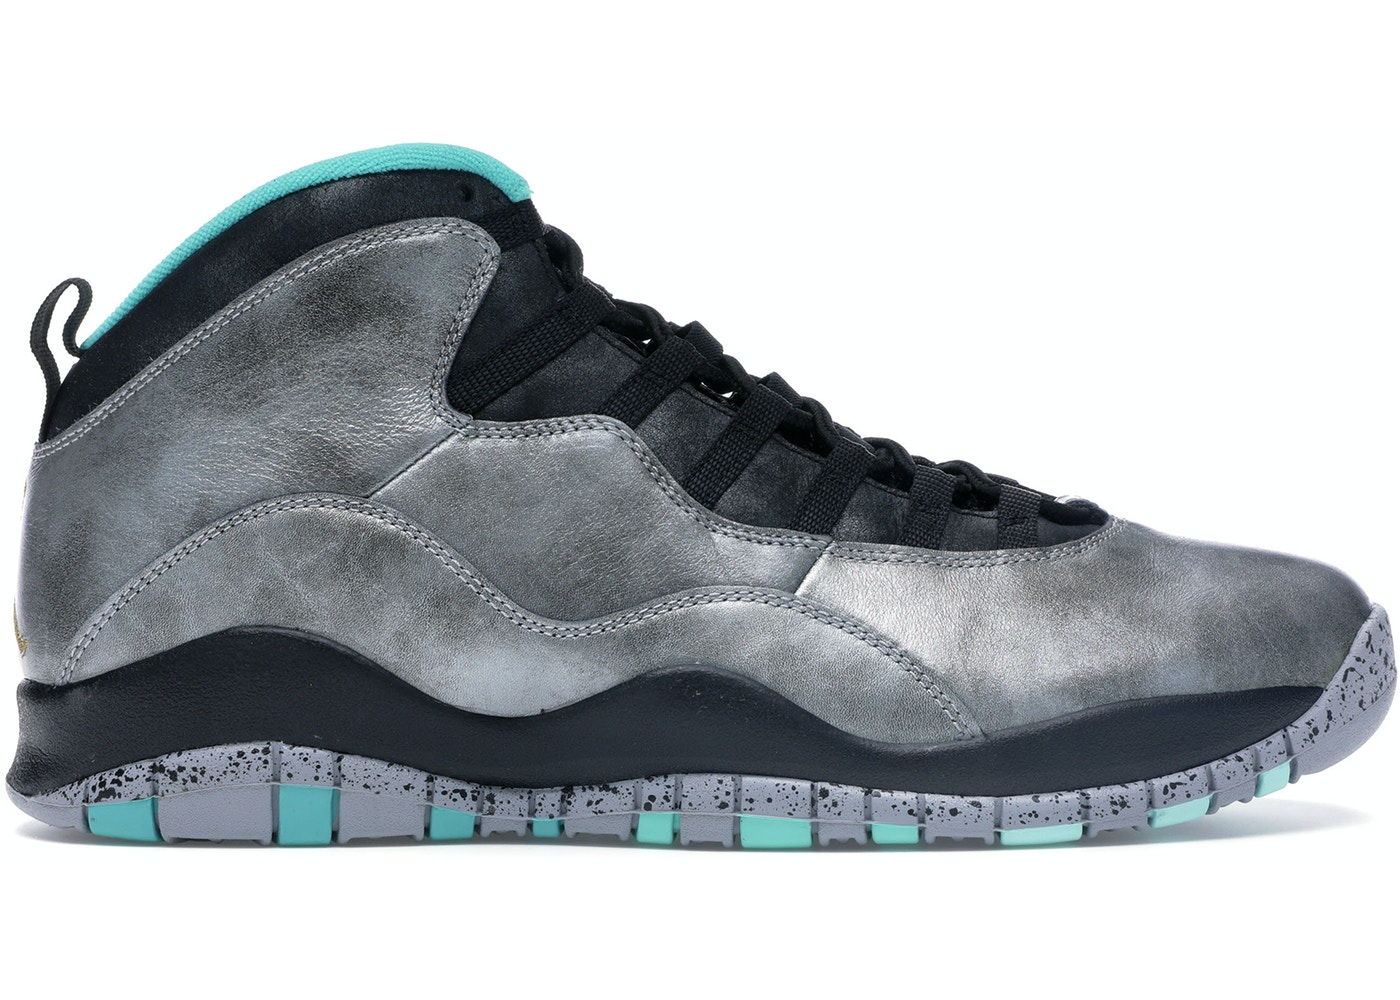 e019dcf9b2f5fc Jordan 10 Retro Lady of Liberty - 705178-045